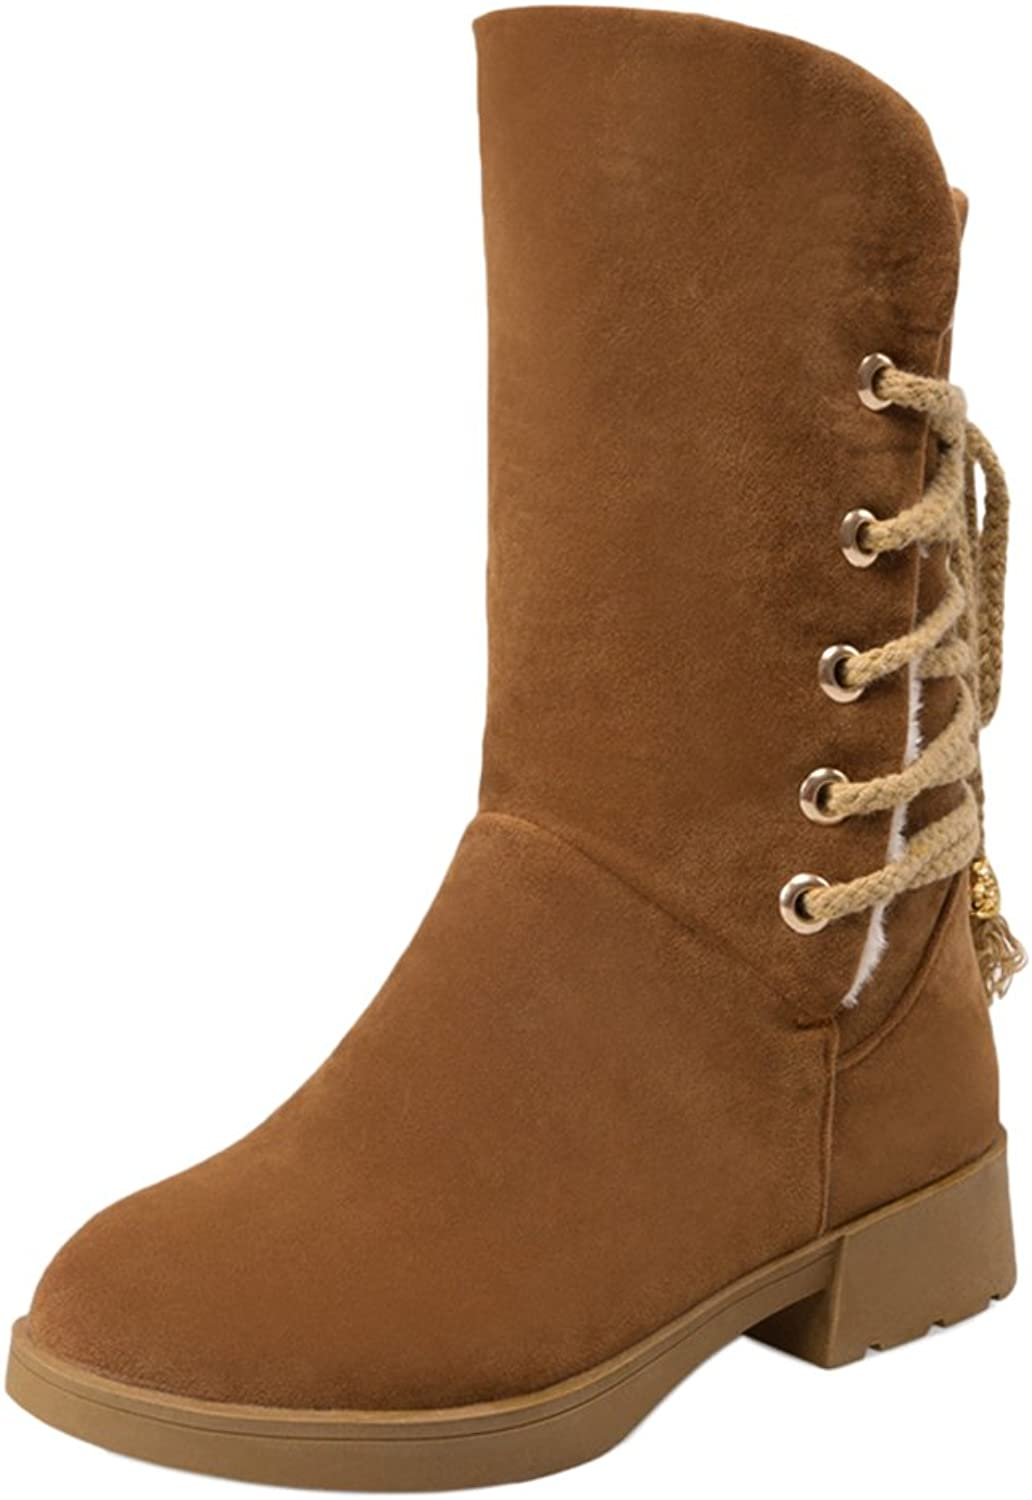 RizaBina Women Comfort Lace Up Mid Calf Boots Warm Lined